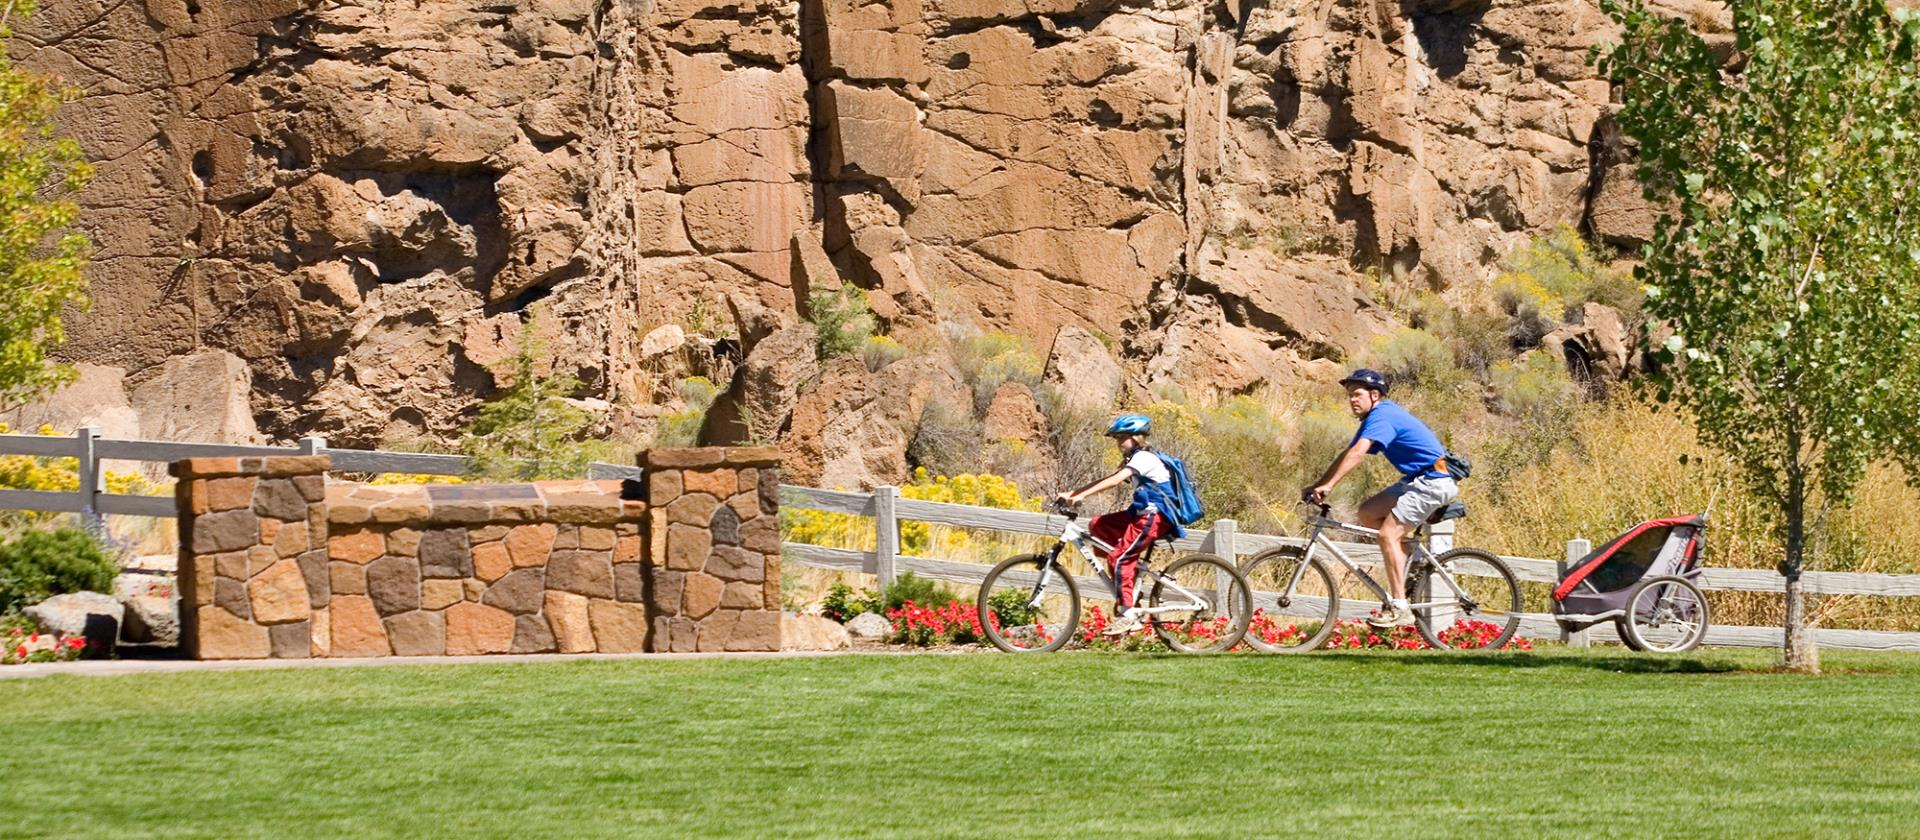 Family biking through park with a rocky cliff in the background.